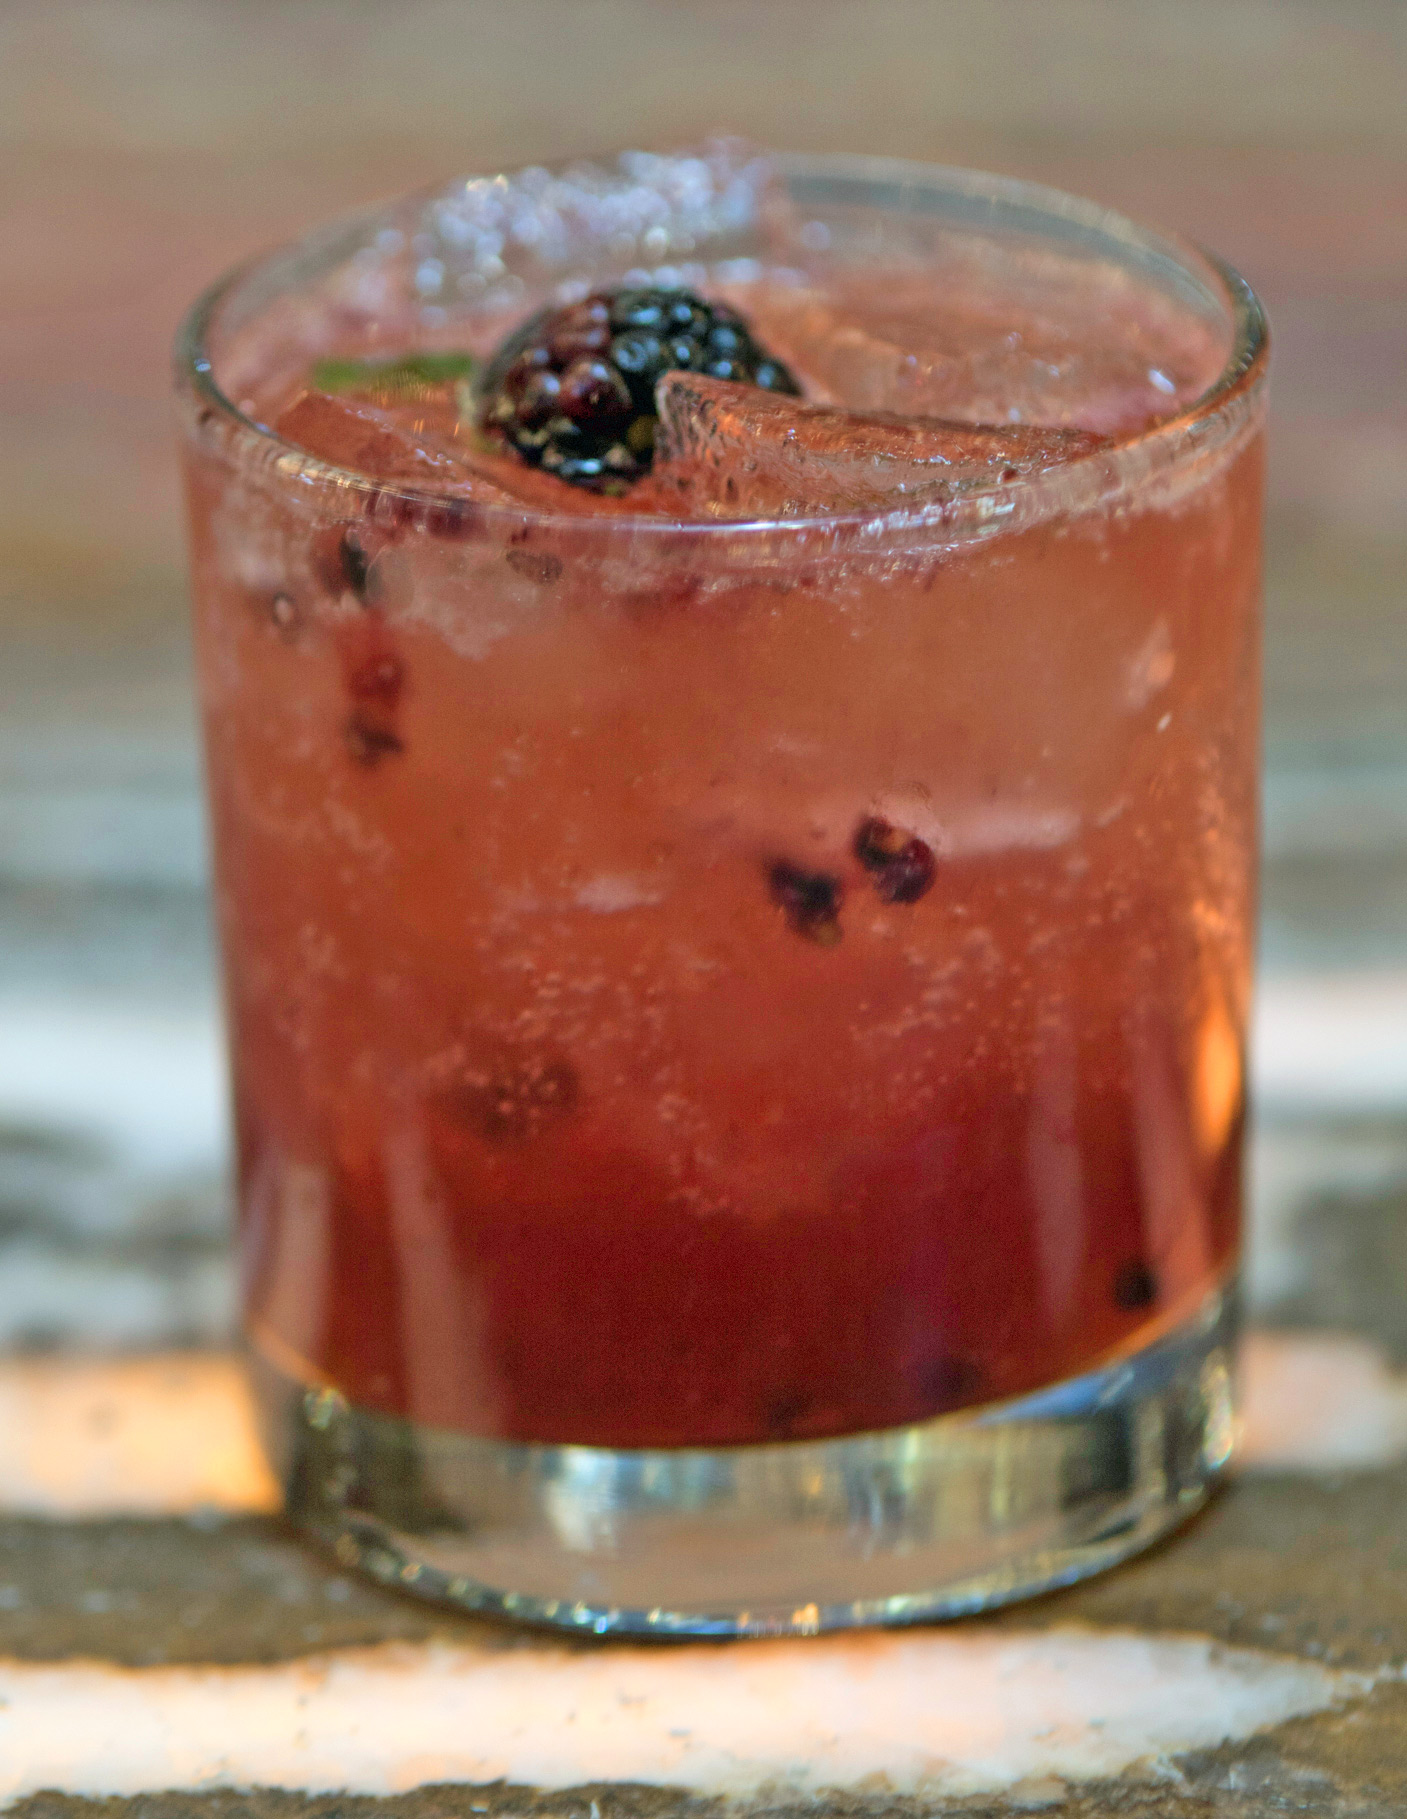 Winter Bramble - muddled mint, blackberries, cognac, top with champagne